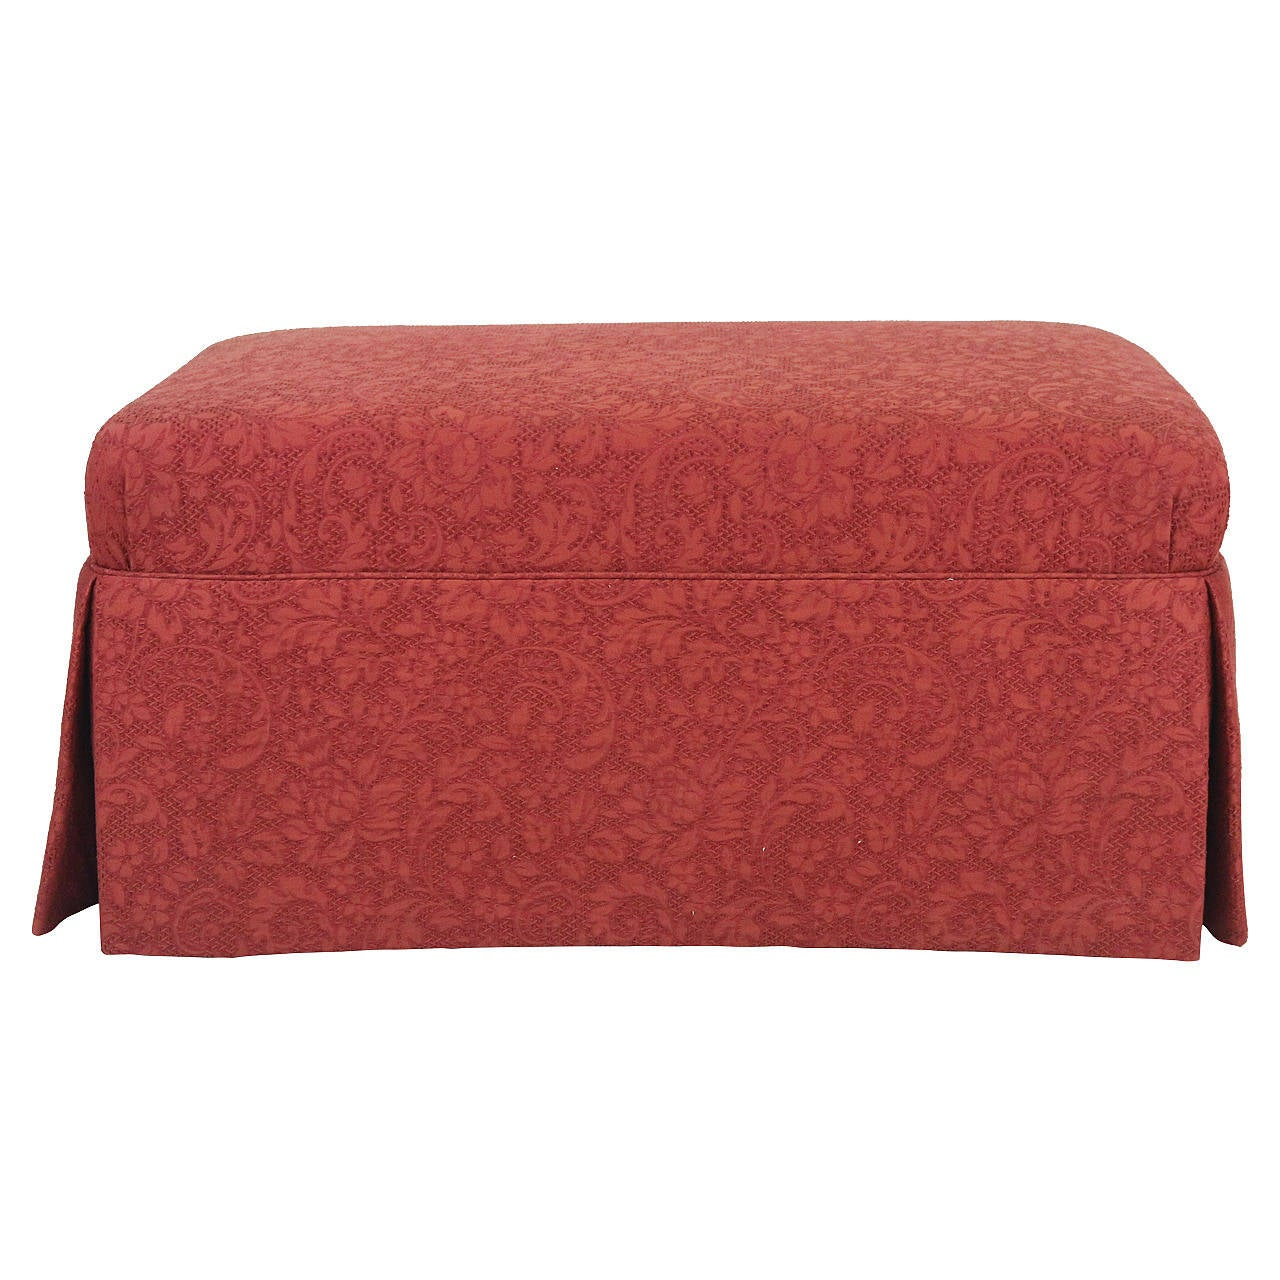 Ottoman Bench Covered in Floral Brocade Scalamandre Fabric Dressmaker Skirt